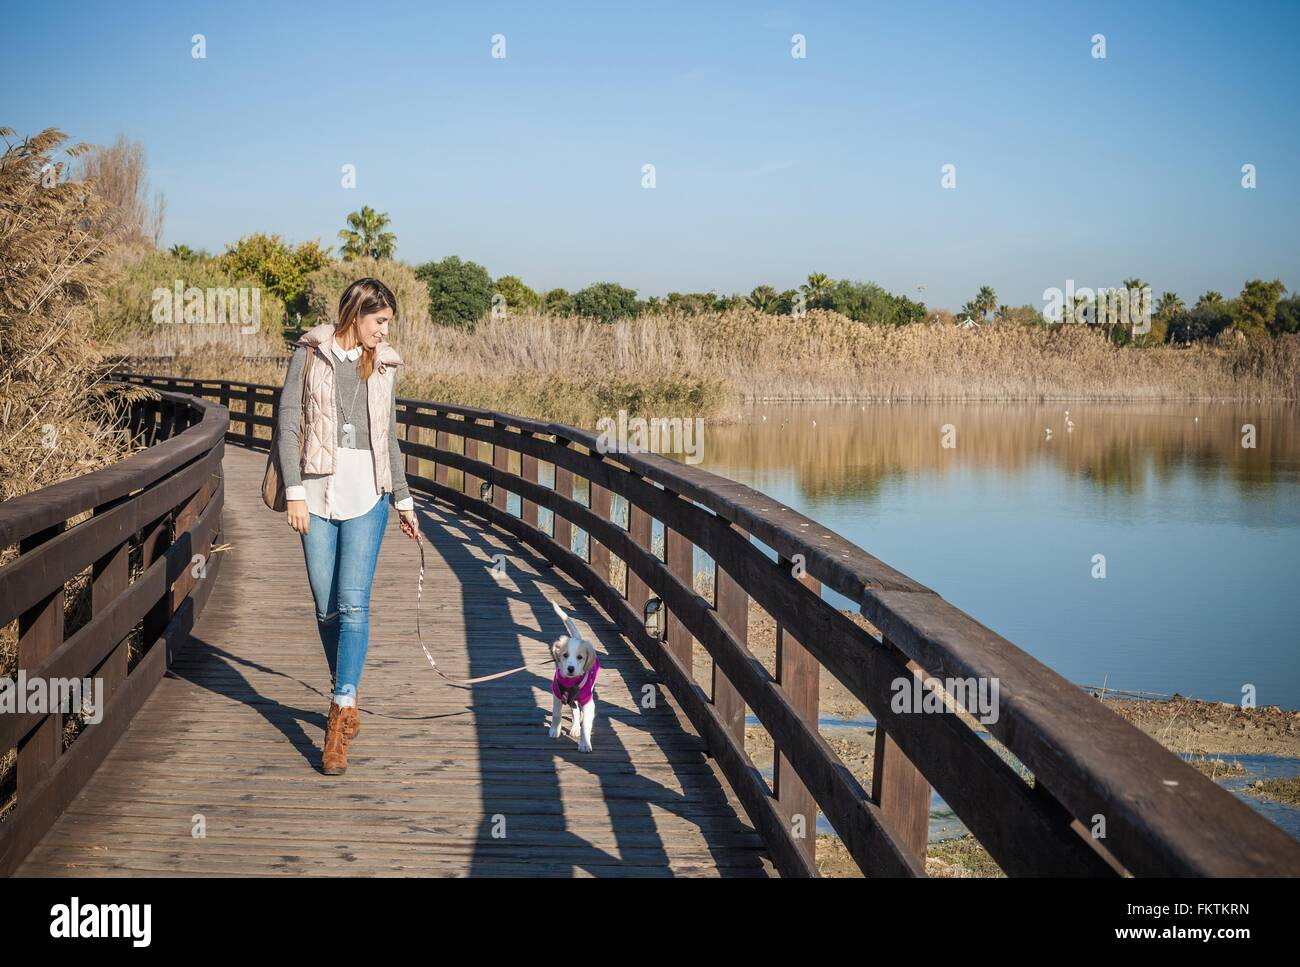 Full length front view   young woman wooden elevated walkway walking dog - Stock Image